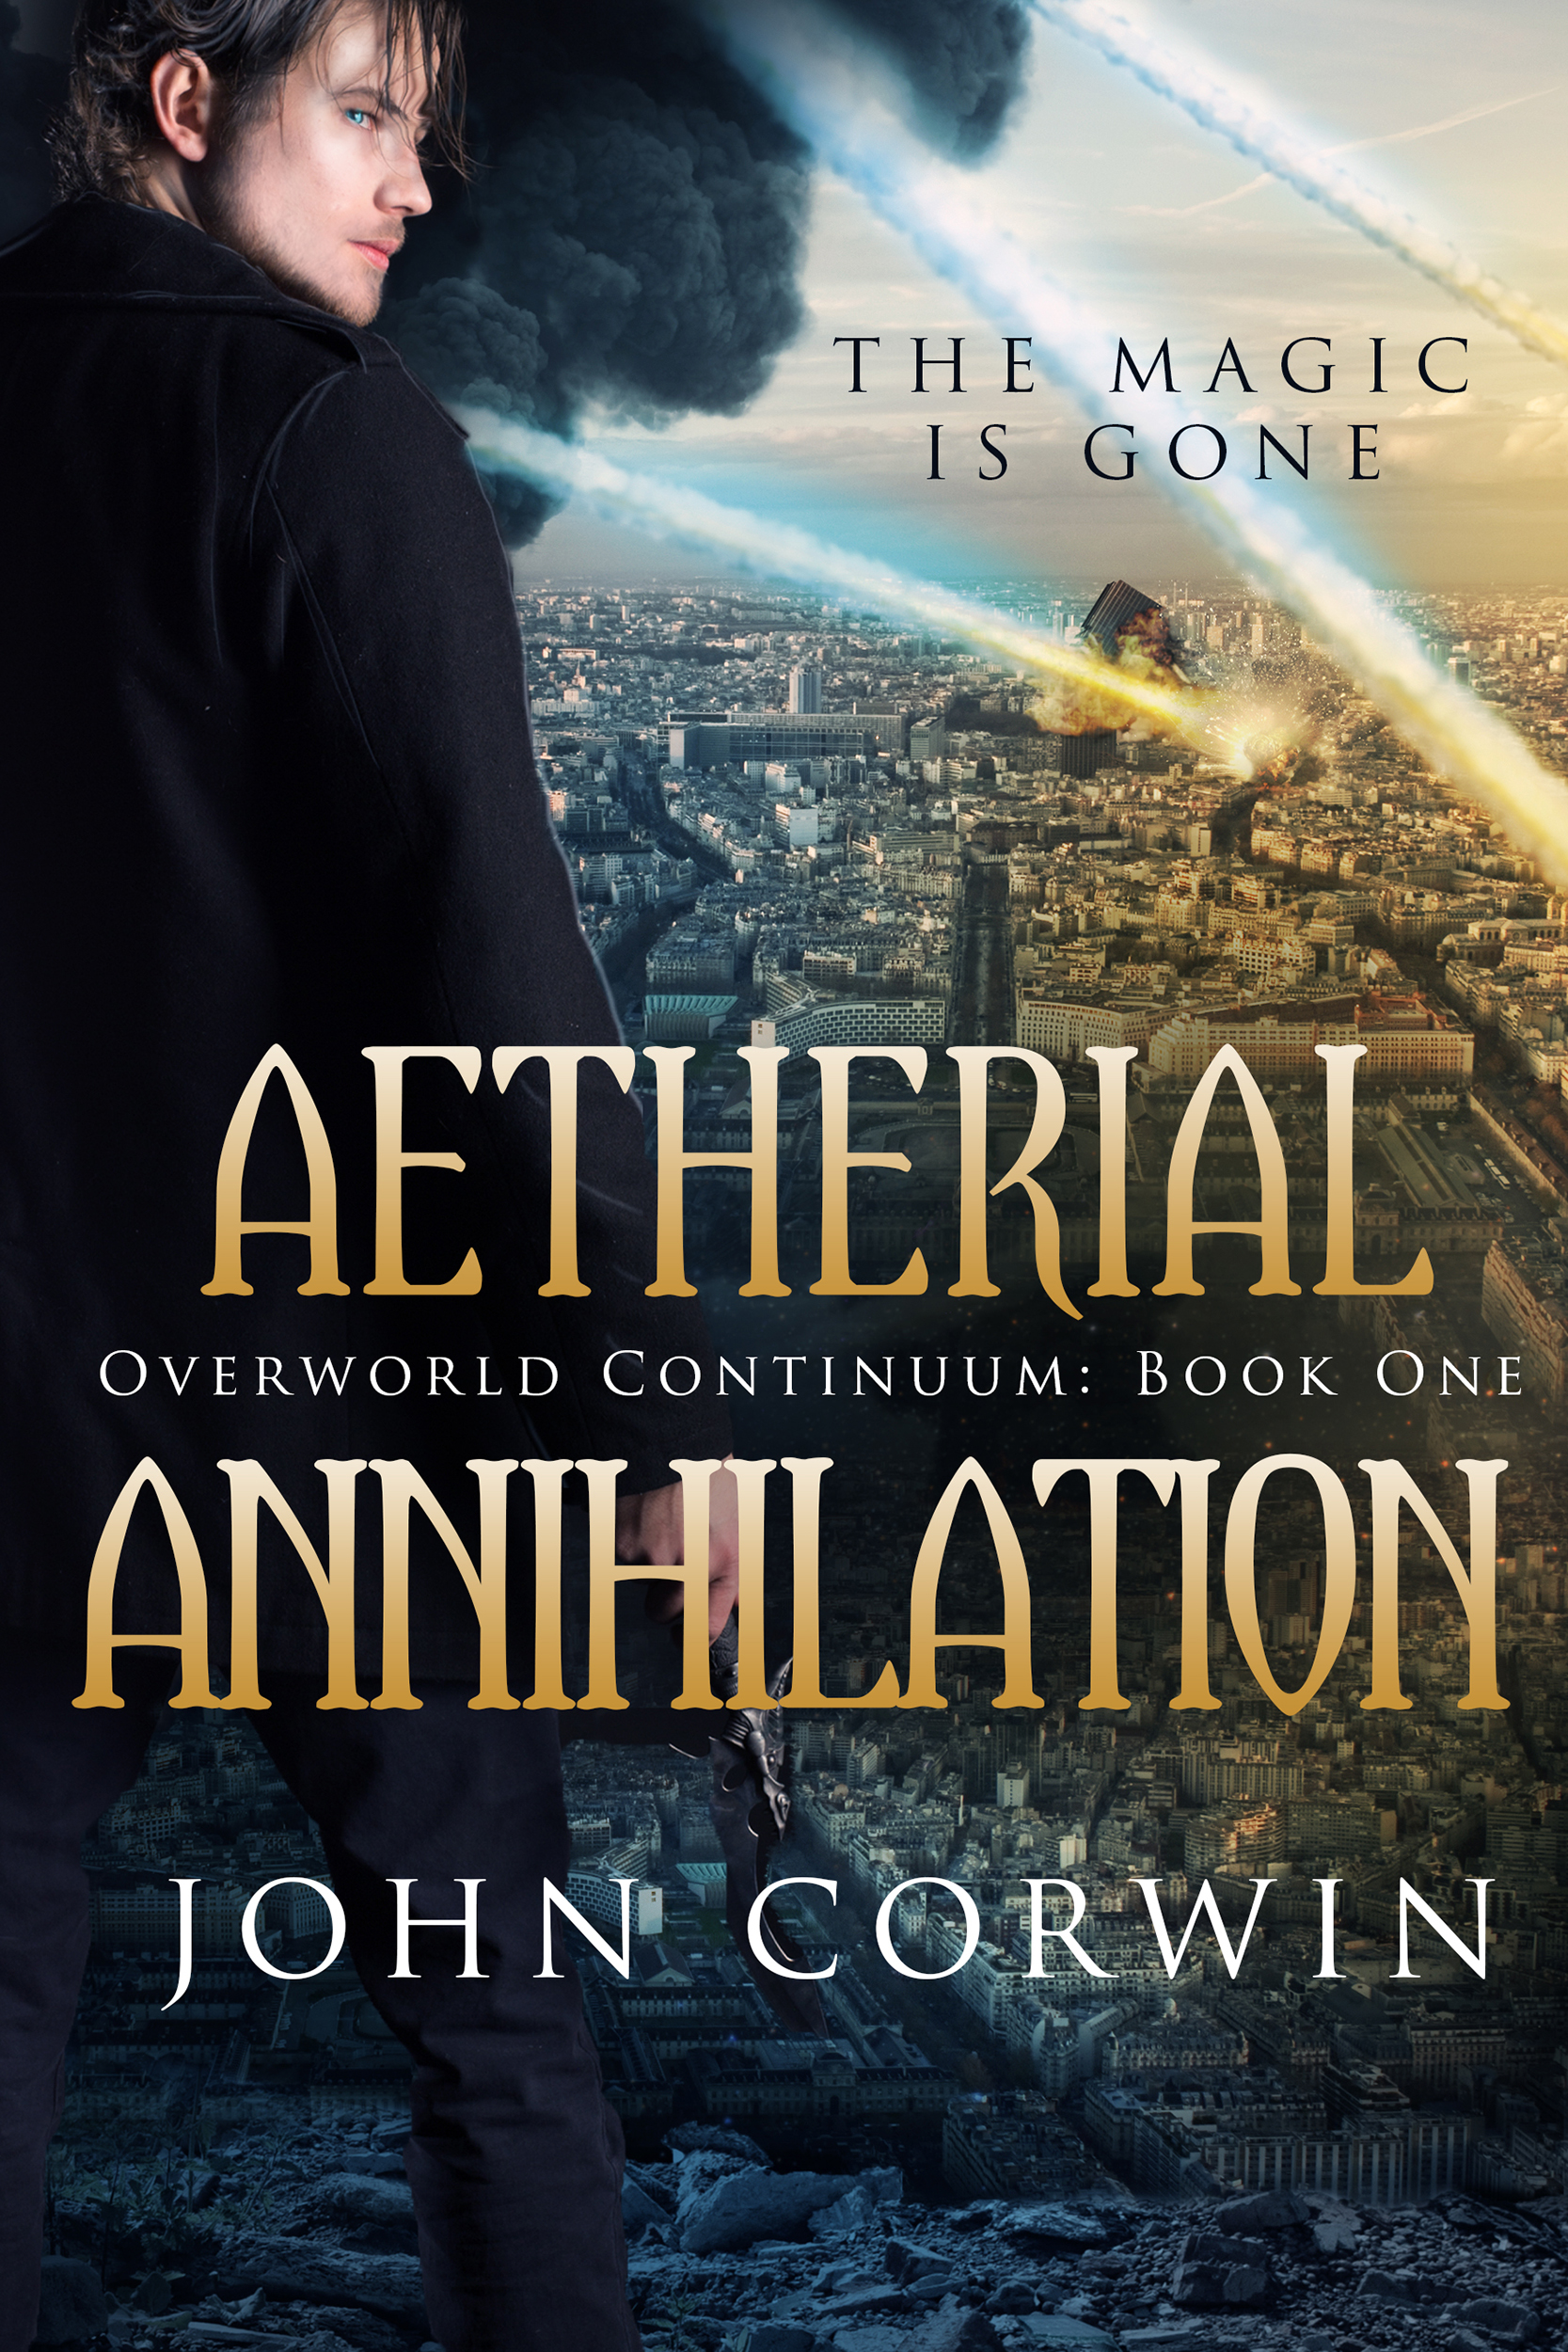 Aetherial Annihilation